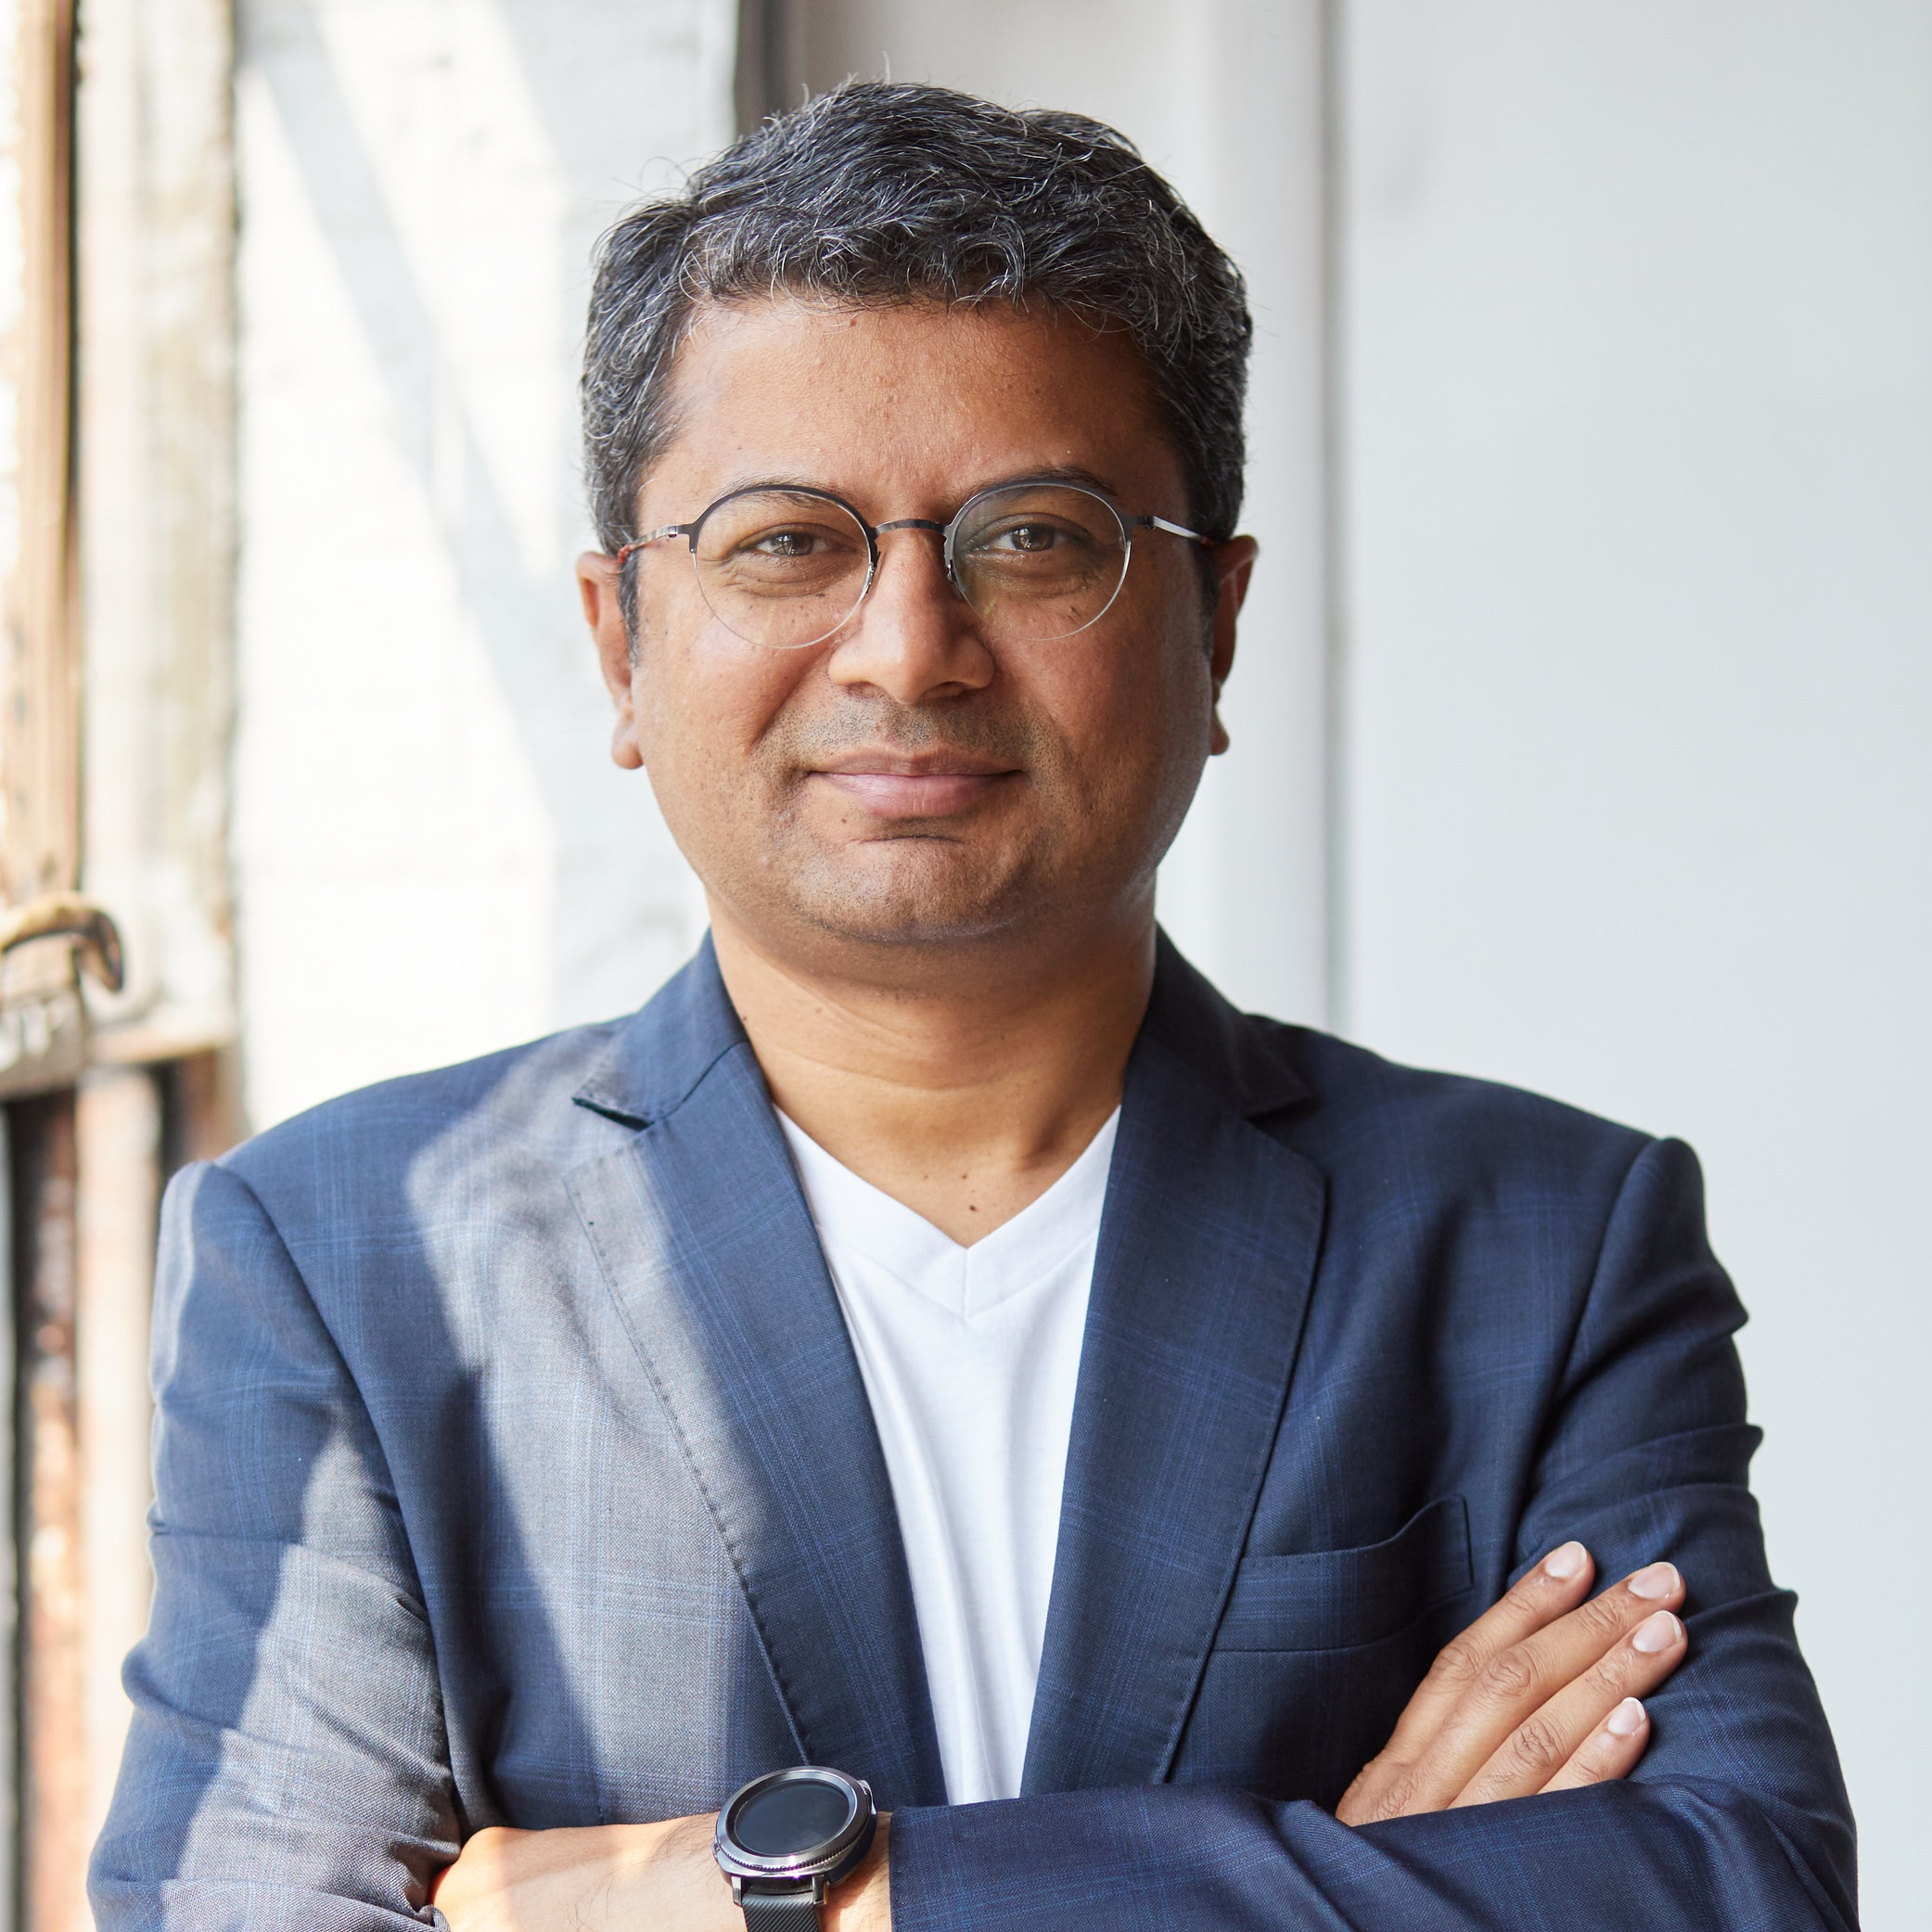 Sajju was formerly on Sisu's advisory board and transitioned to the role of Sisu's COO late in 2016. He is a successful serial entrepreneur, mentor, and board member with over twenty years of senior management experience in industries such as computers, polymers, outsourcing services, renewable energy, healthcare among others. Ventures Sajju has helped in their early days have grown to deliver large-scale global social impact. D.light has impacted 90+million people, Embrace reached 300,000+ babies, and Chirag has illuminated over 400 villages. His ventures have been featured on BBC, CNBC, CNN, ABC, Forbes, Wall Street Journal, and many other media outlets across the world. He is an alumnus of the Harvard Business School (ExecEd) and has an MBA from the University of Iowa.